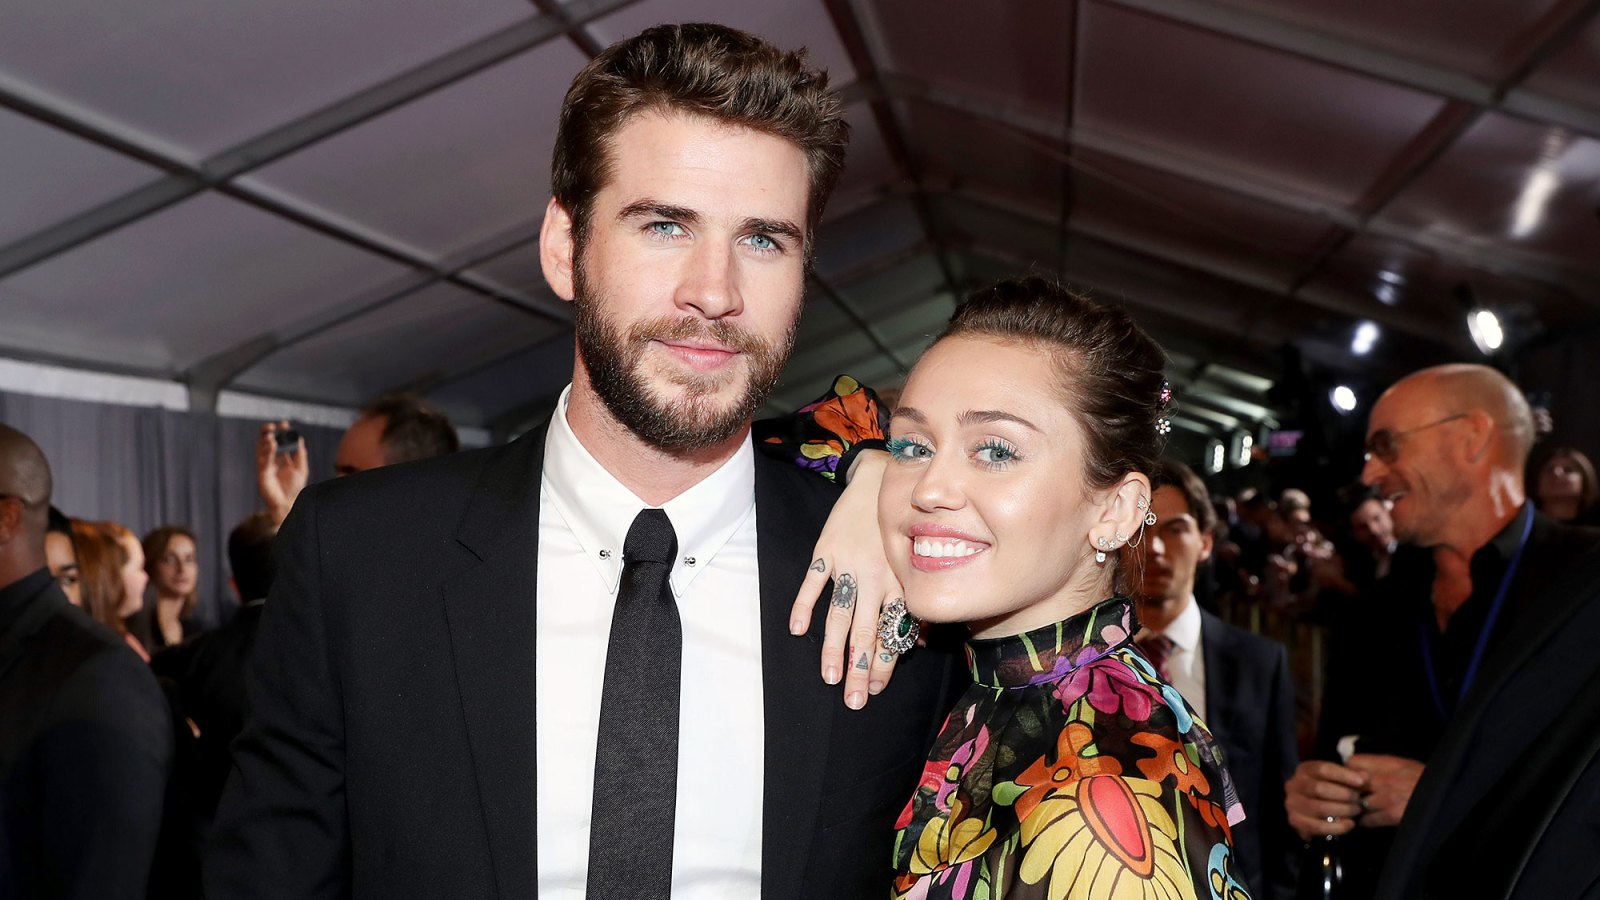 a289f4228496 Miley Cyrus' Steamy Valentine's Day Tweet for Liam Hemsworth Will Make Your  Jaw Drop